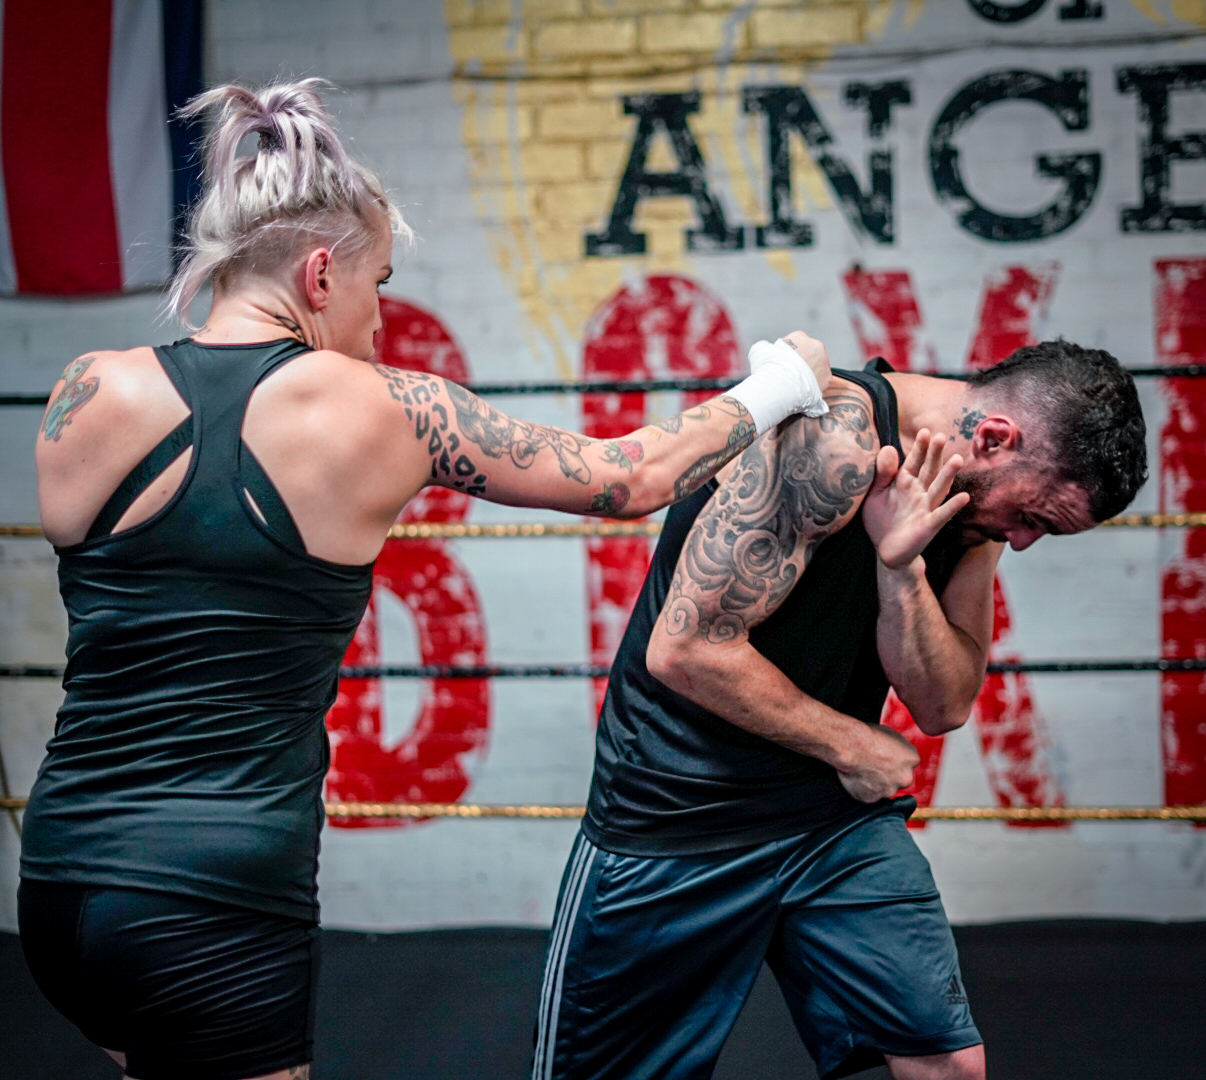 Queen of Bare Knuckle, Bec Rawlings